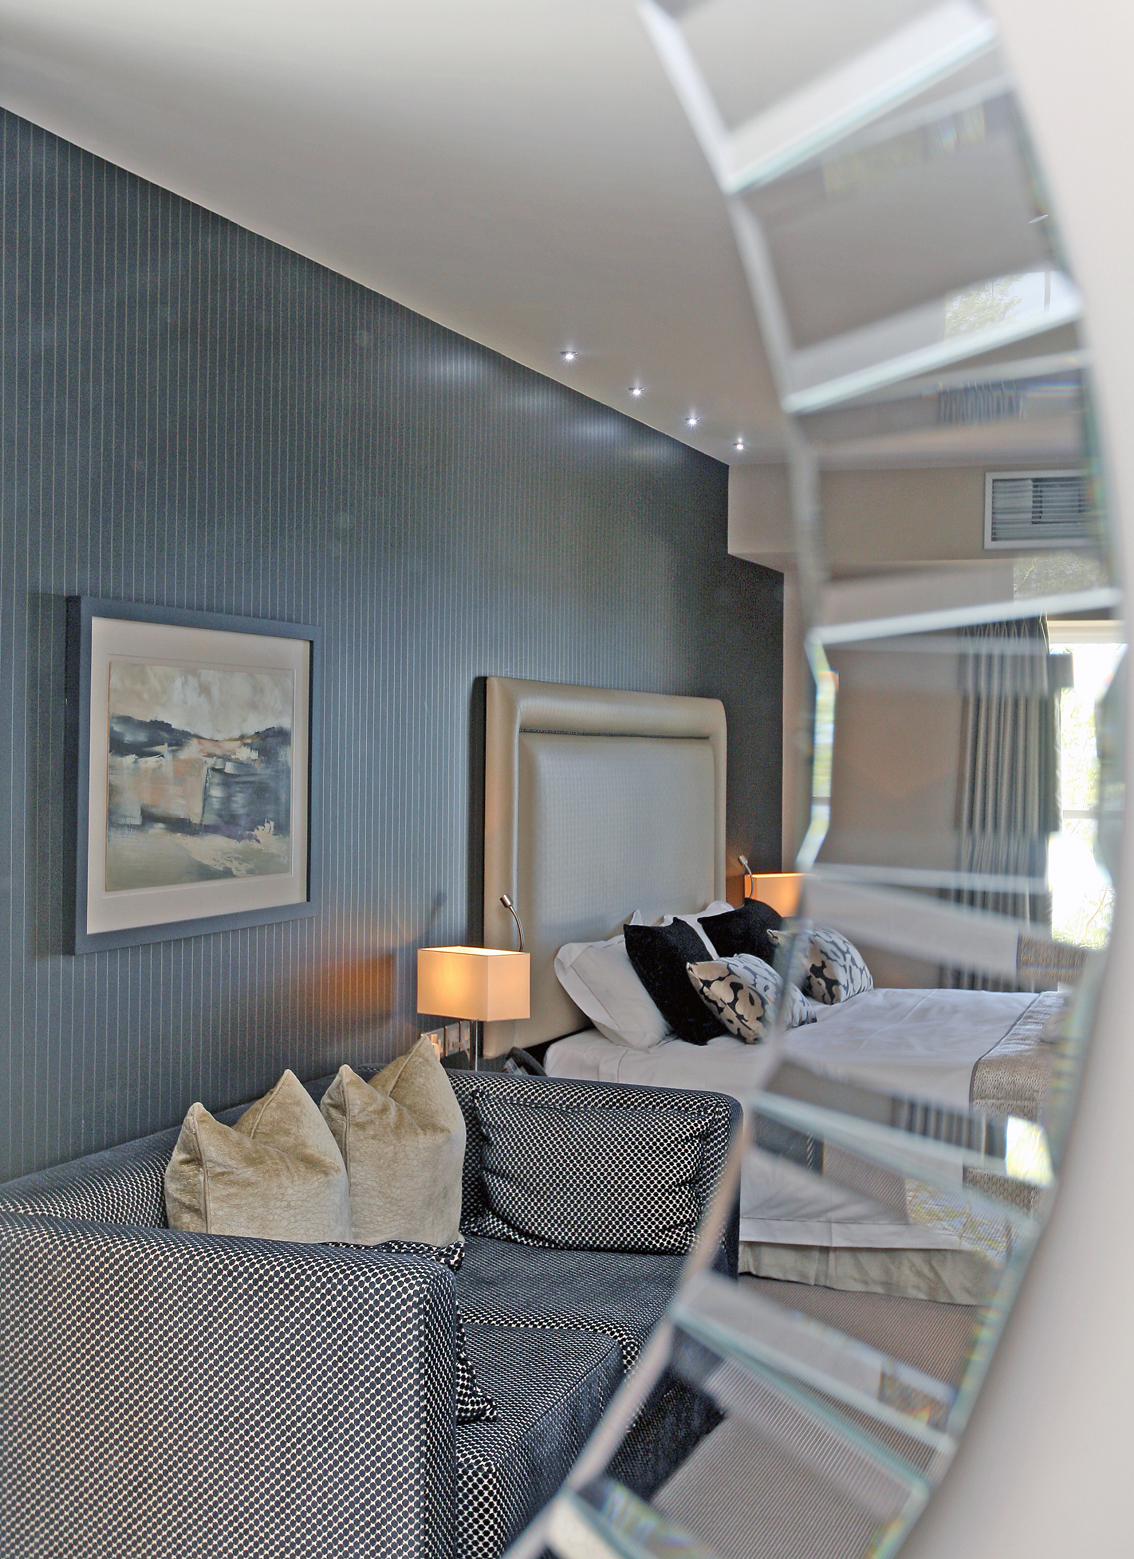 LlawnrocRm11g 16/06/2016 Room 11, a generous dual aspect suite room with sea views and a large bathroom with a separate shower and bath. This suite can be made as a double or twin room.